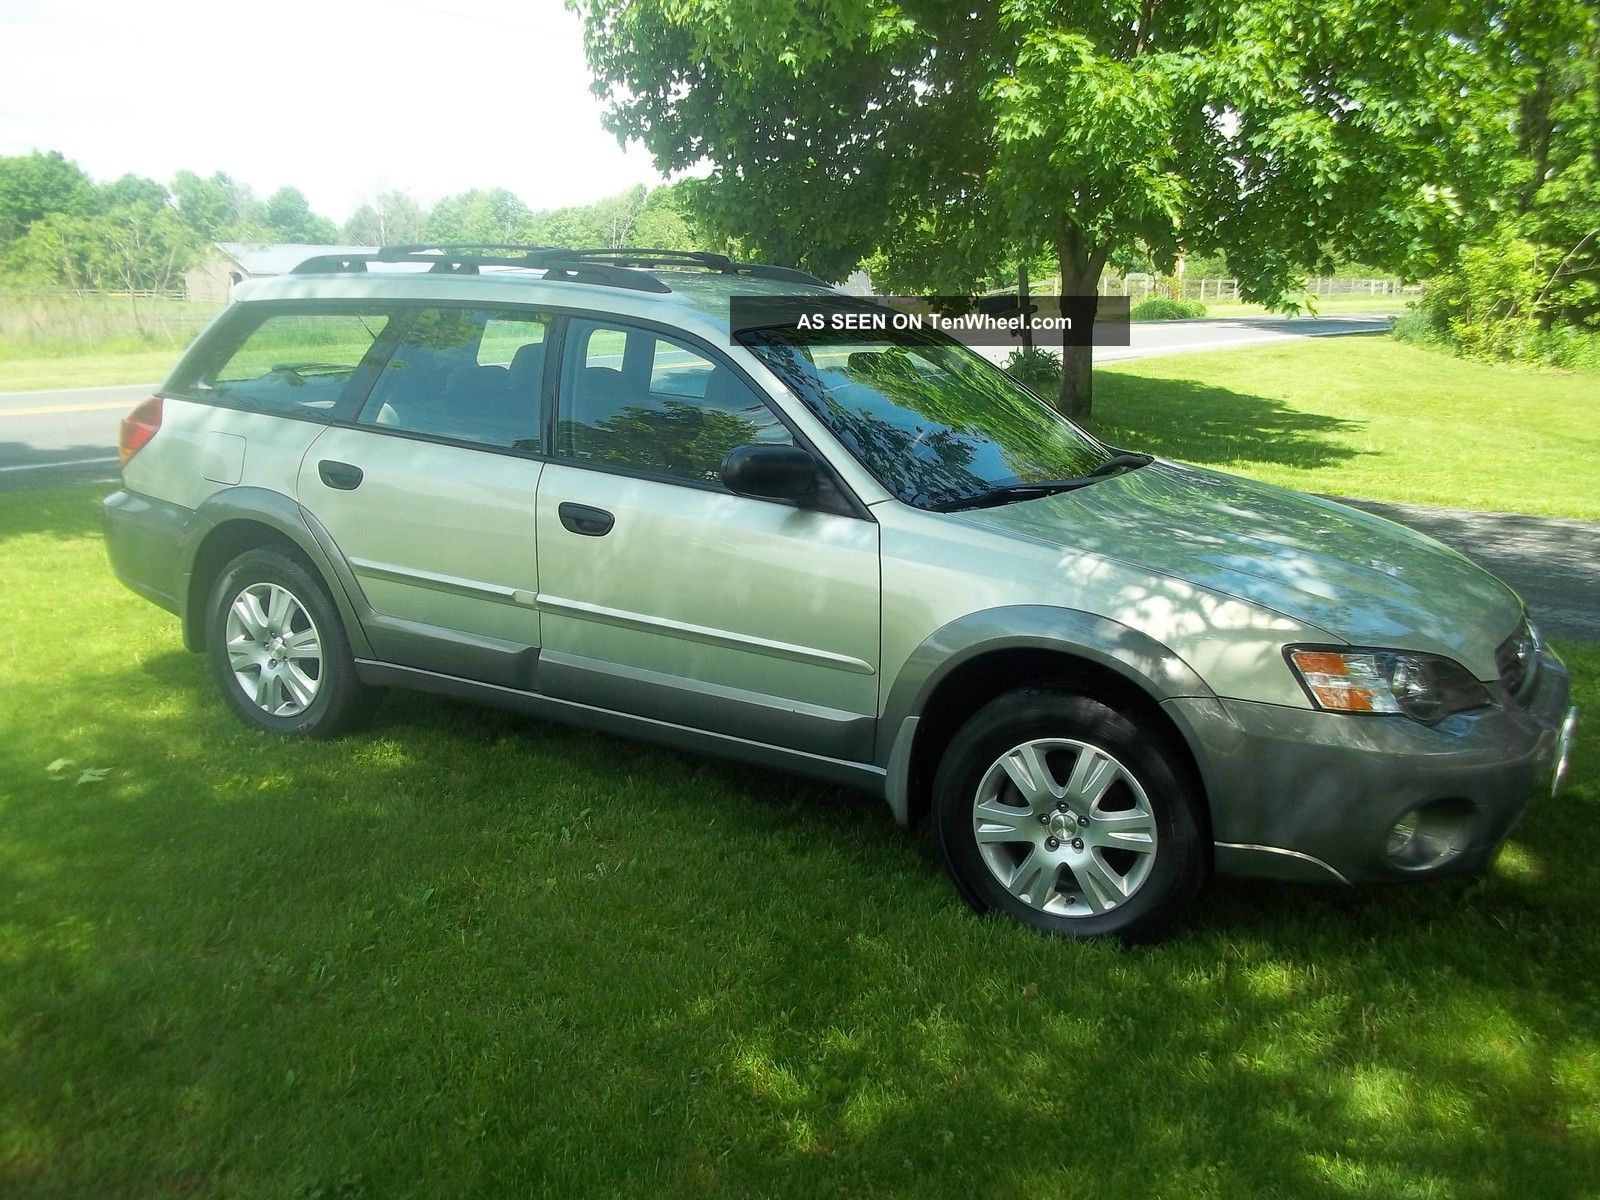 2005 06 07 Legacy Outback Awd - & Beauty Runs & Drives Excellent. Outback photo